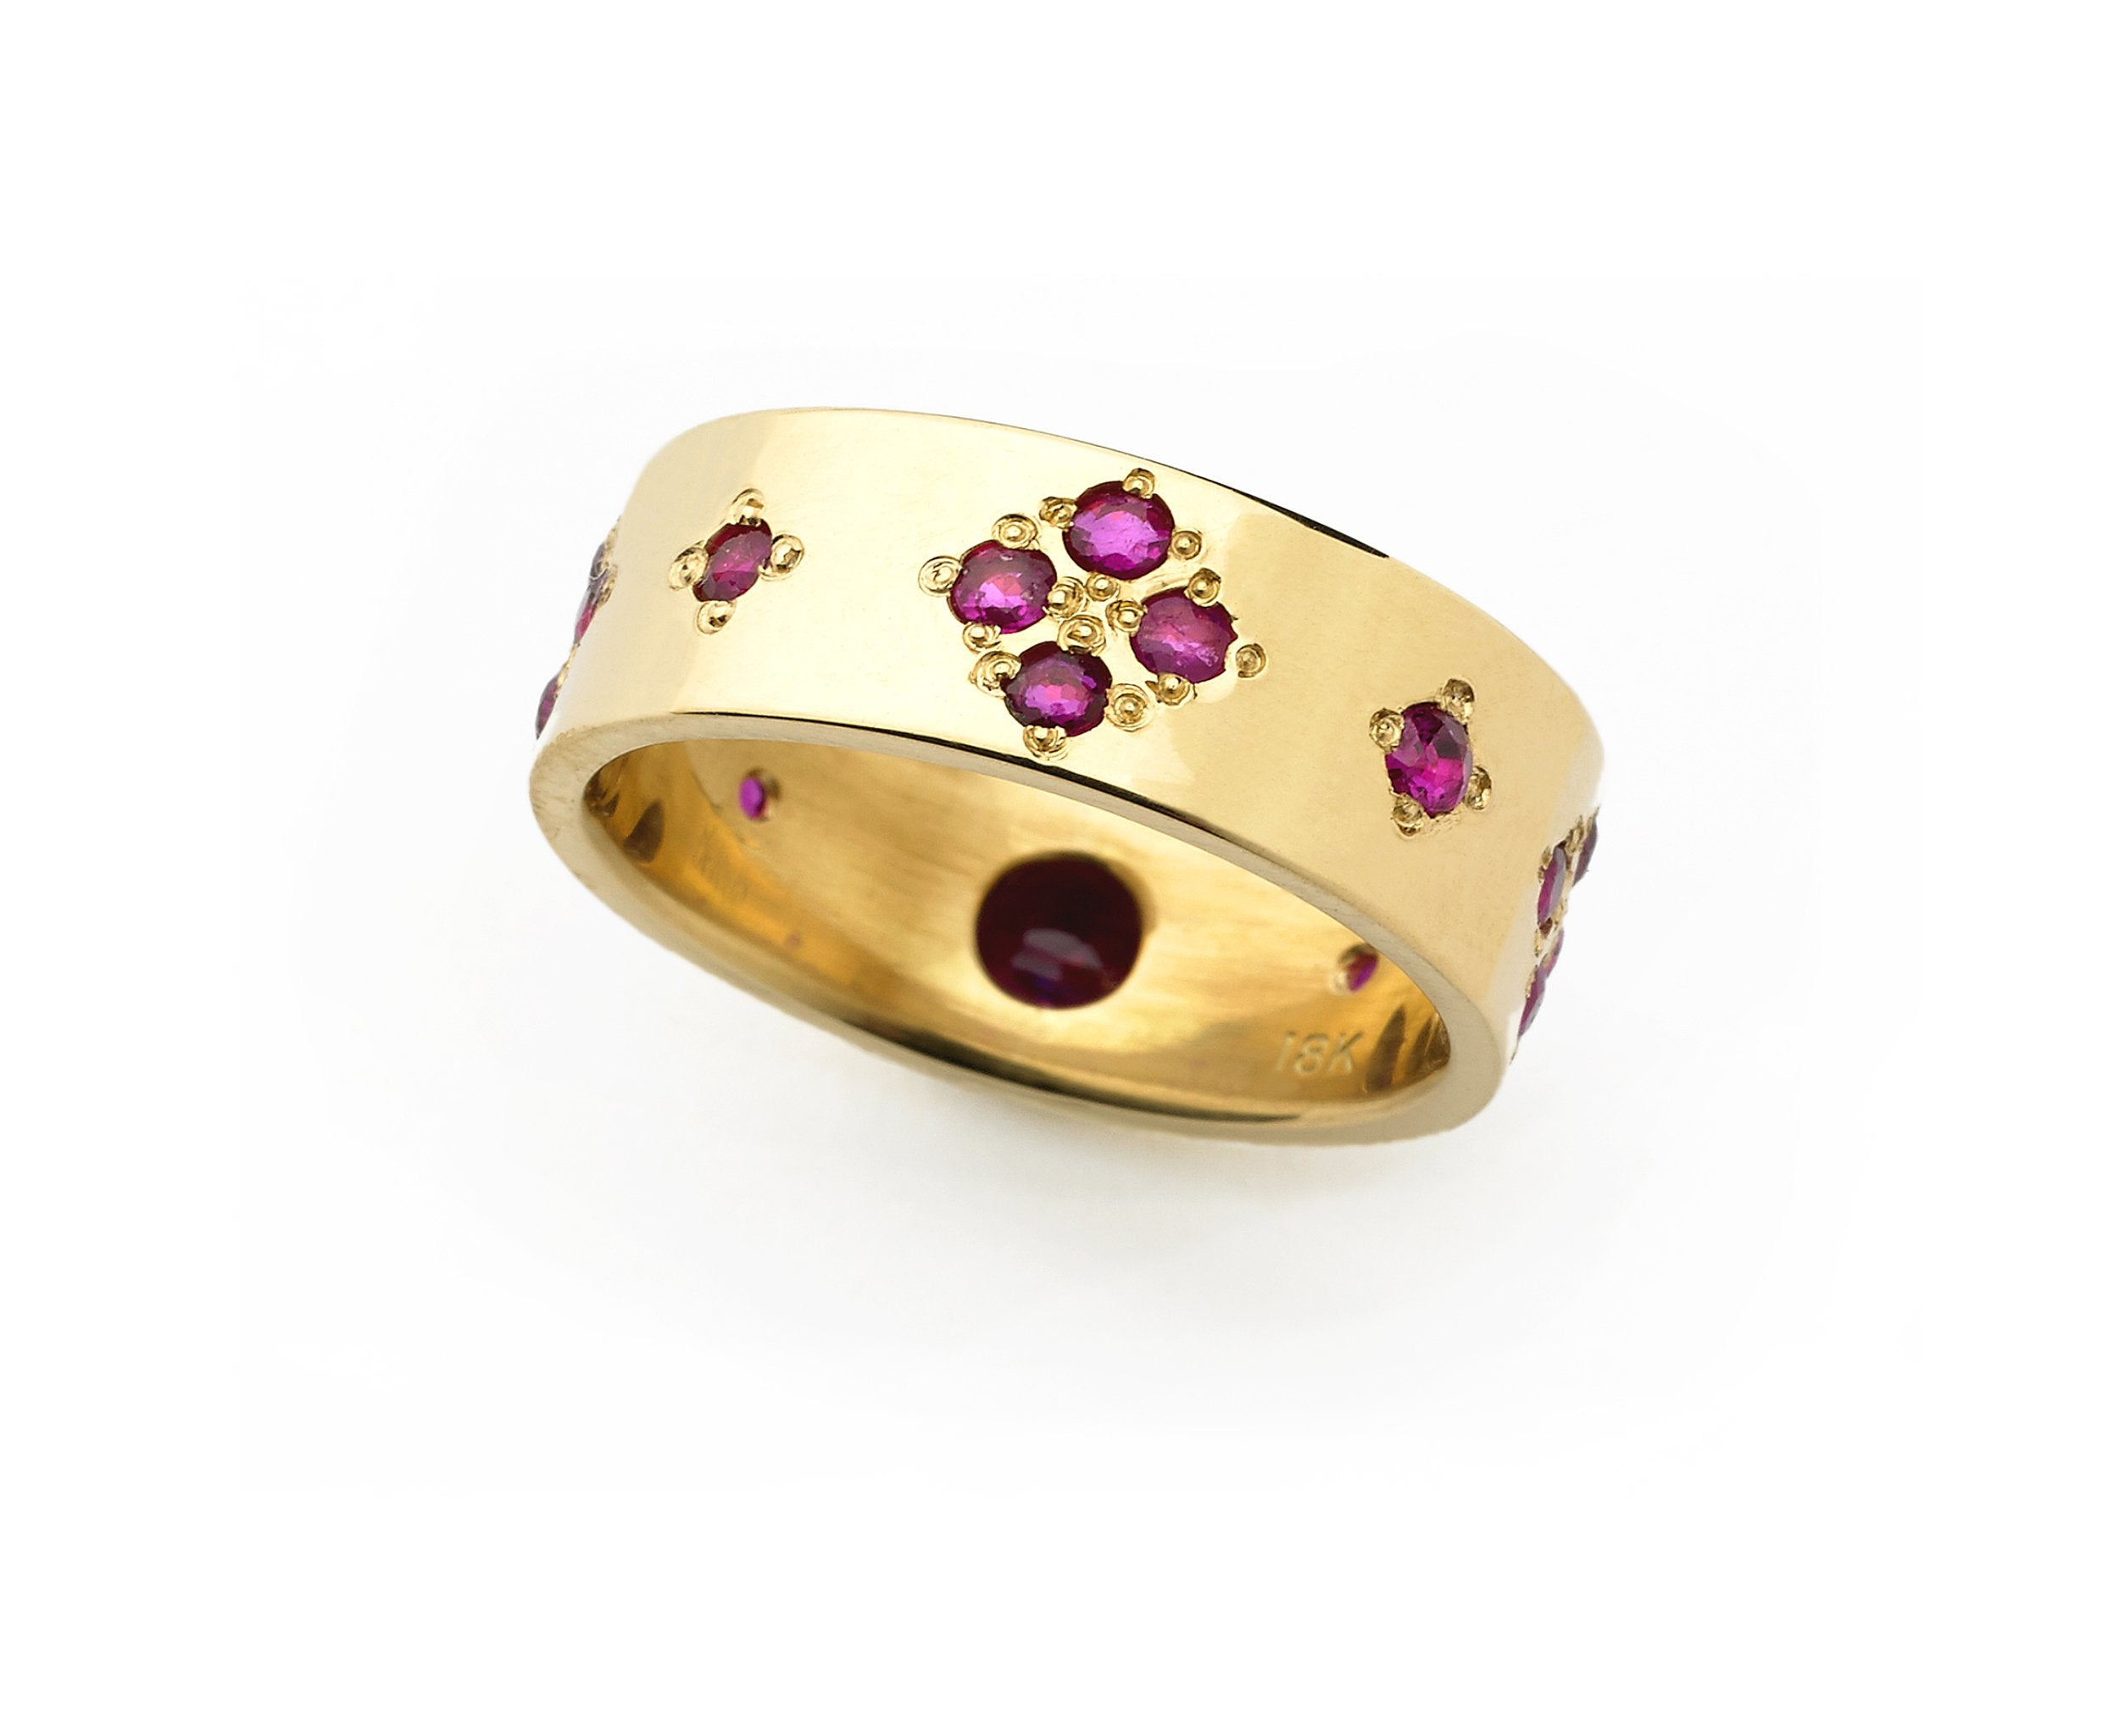 Mary, Queen of Scots Ring, 18K and Rubies